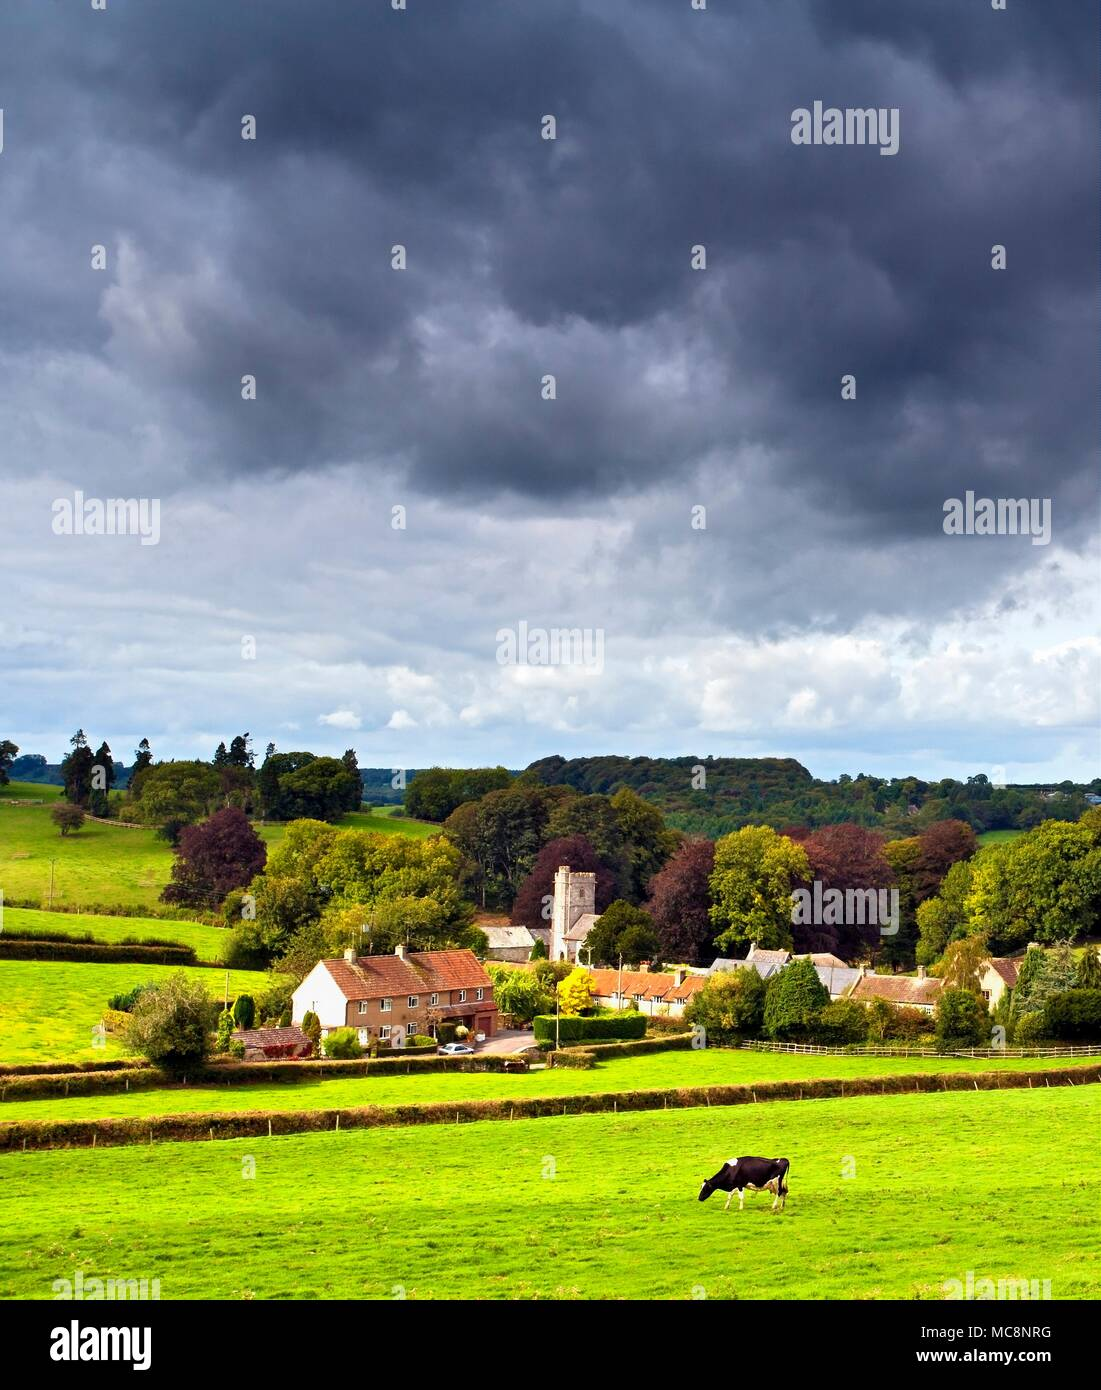 A summer view of the picturesque village of Whitestaunton  in rural Somerset, England. - Stock Image